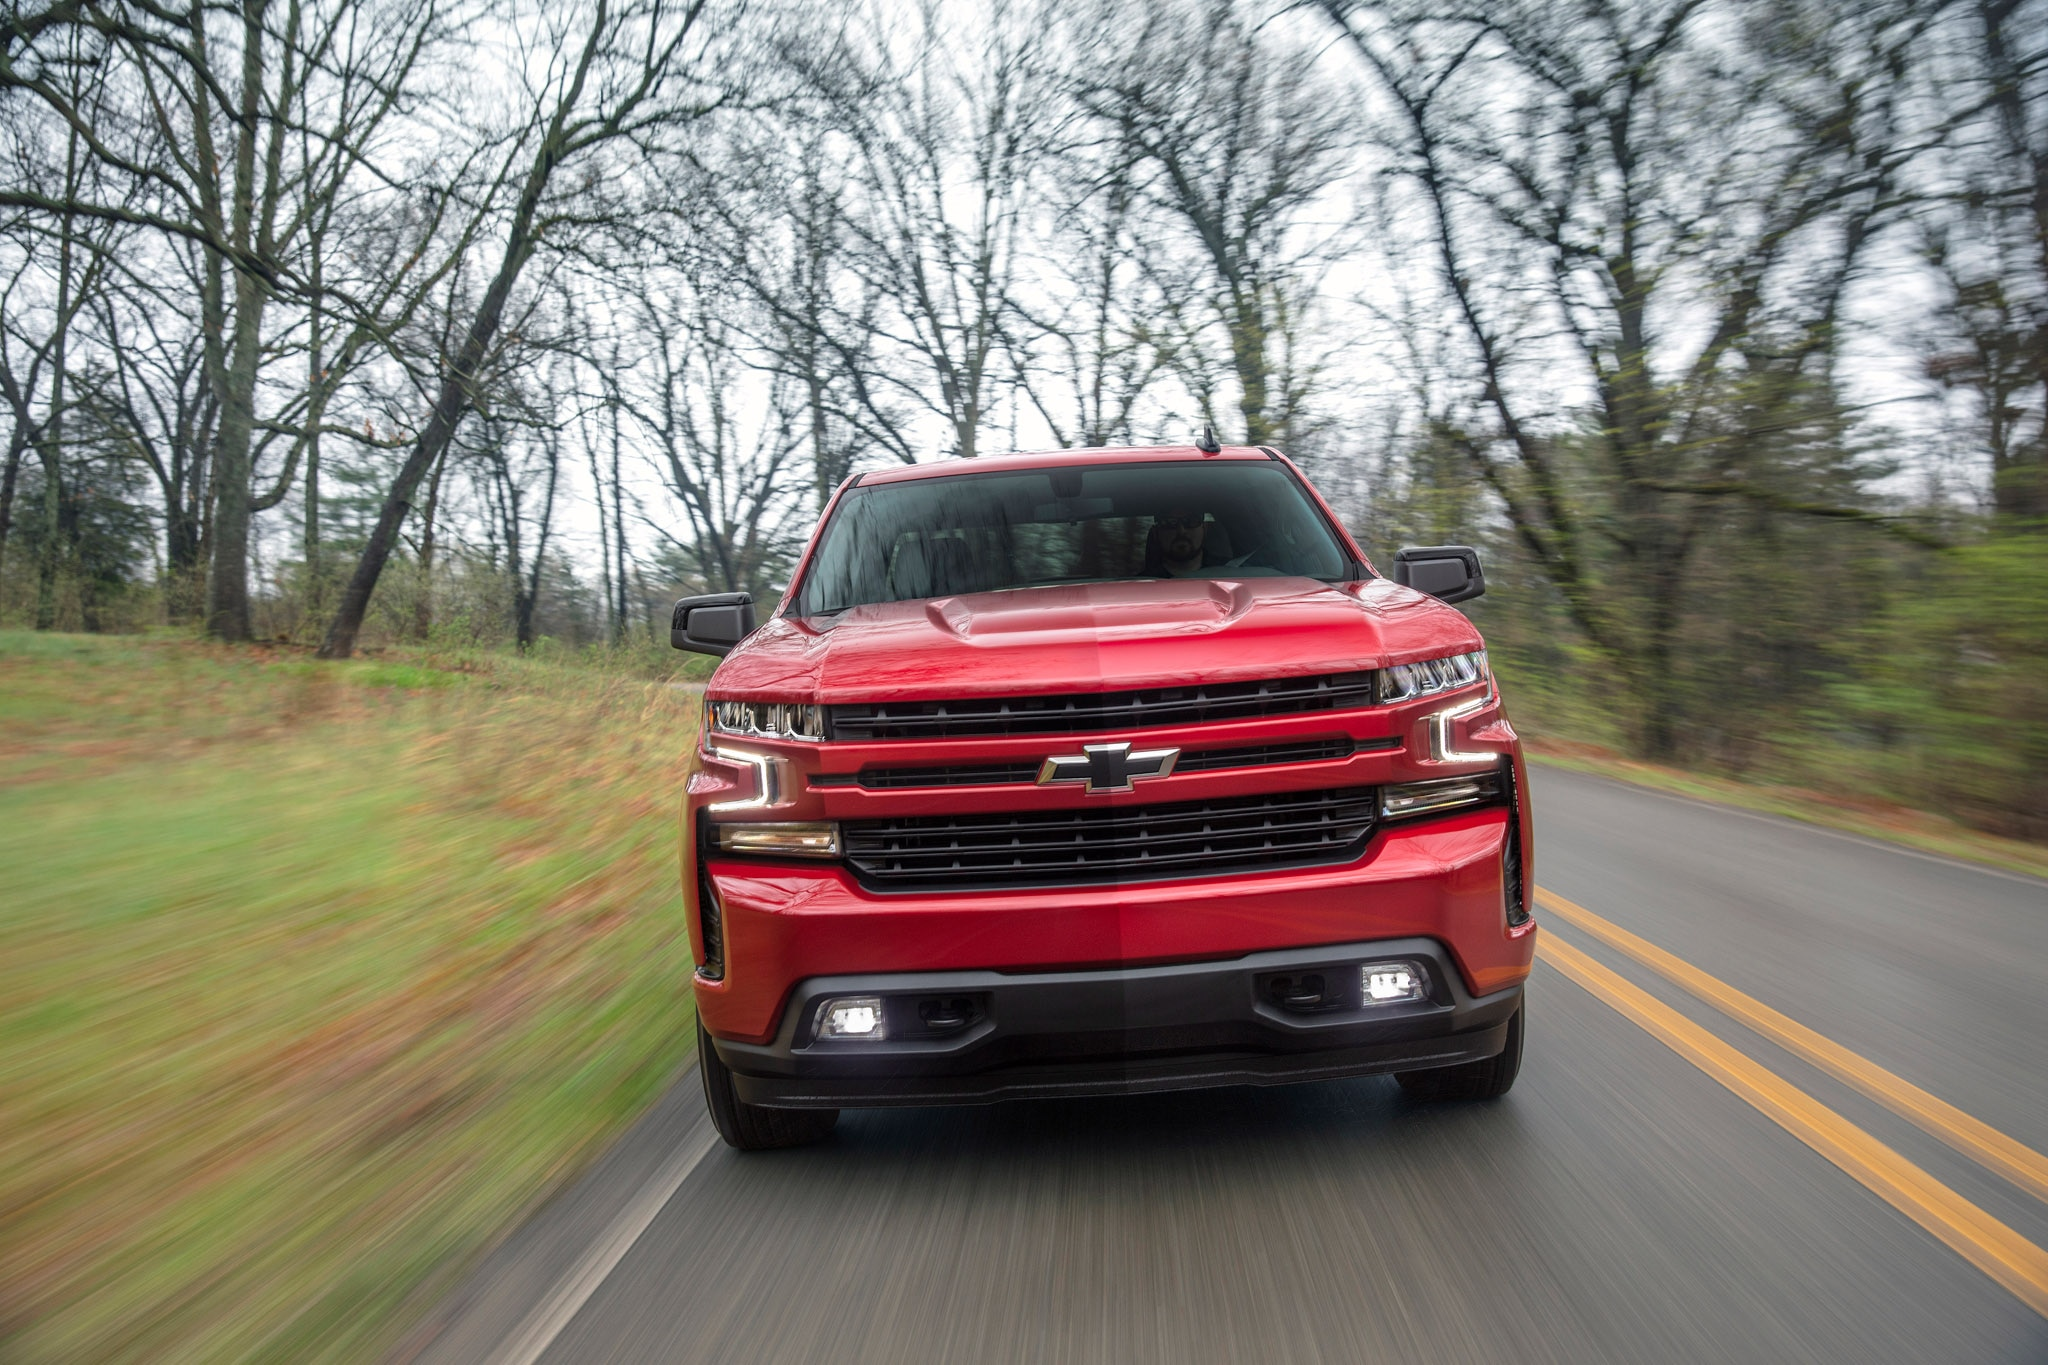 2019 Chevrolet Silverado Pricing Announced | Automobile ...